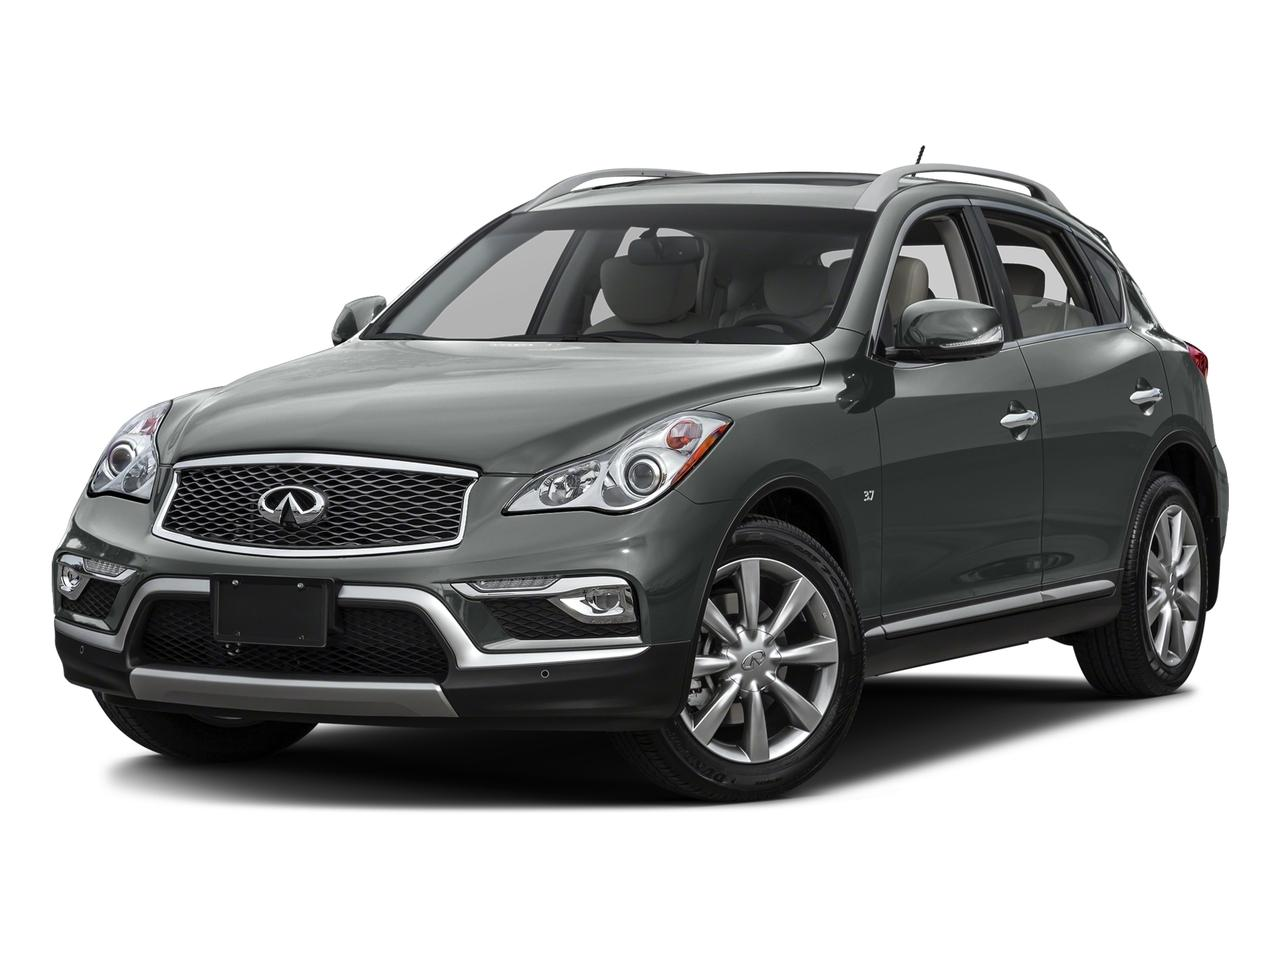 2016 INFINITI QX50 Vehicle Photo in Tulsa, OK 74133